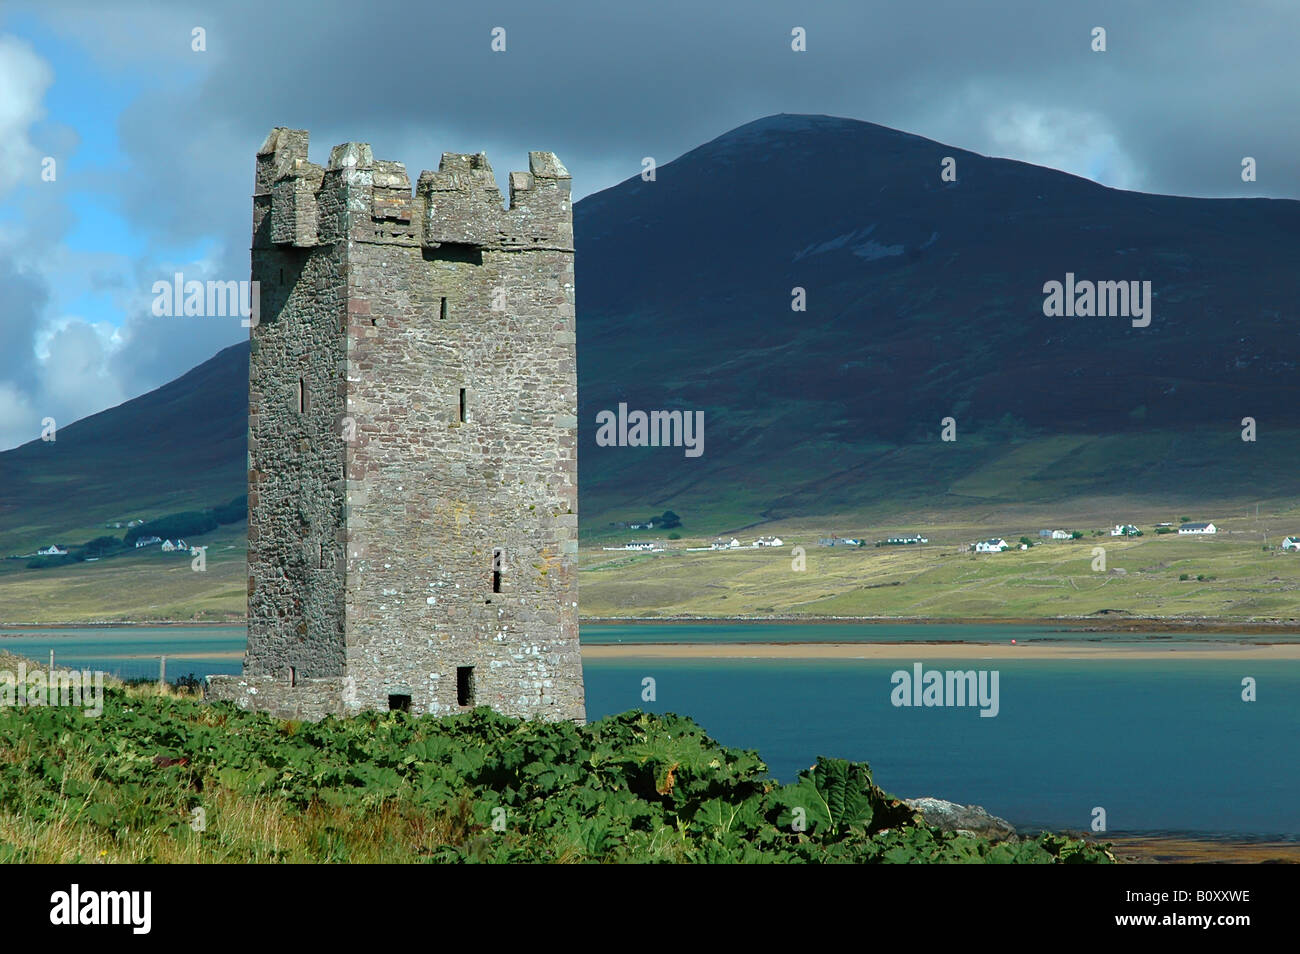 An old castle tower ruin on Achill Island (Ireland) on a sunny day, in the background a large hill on the mainland - Stock Image